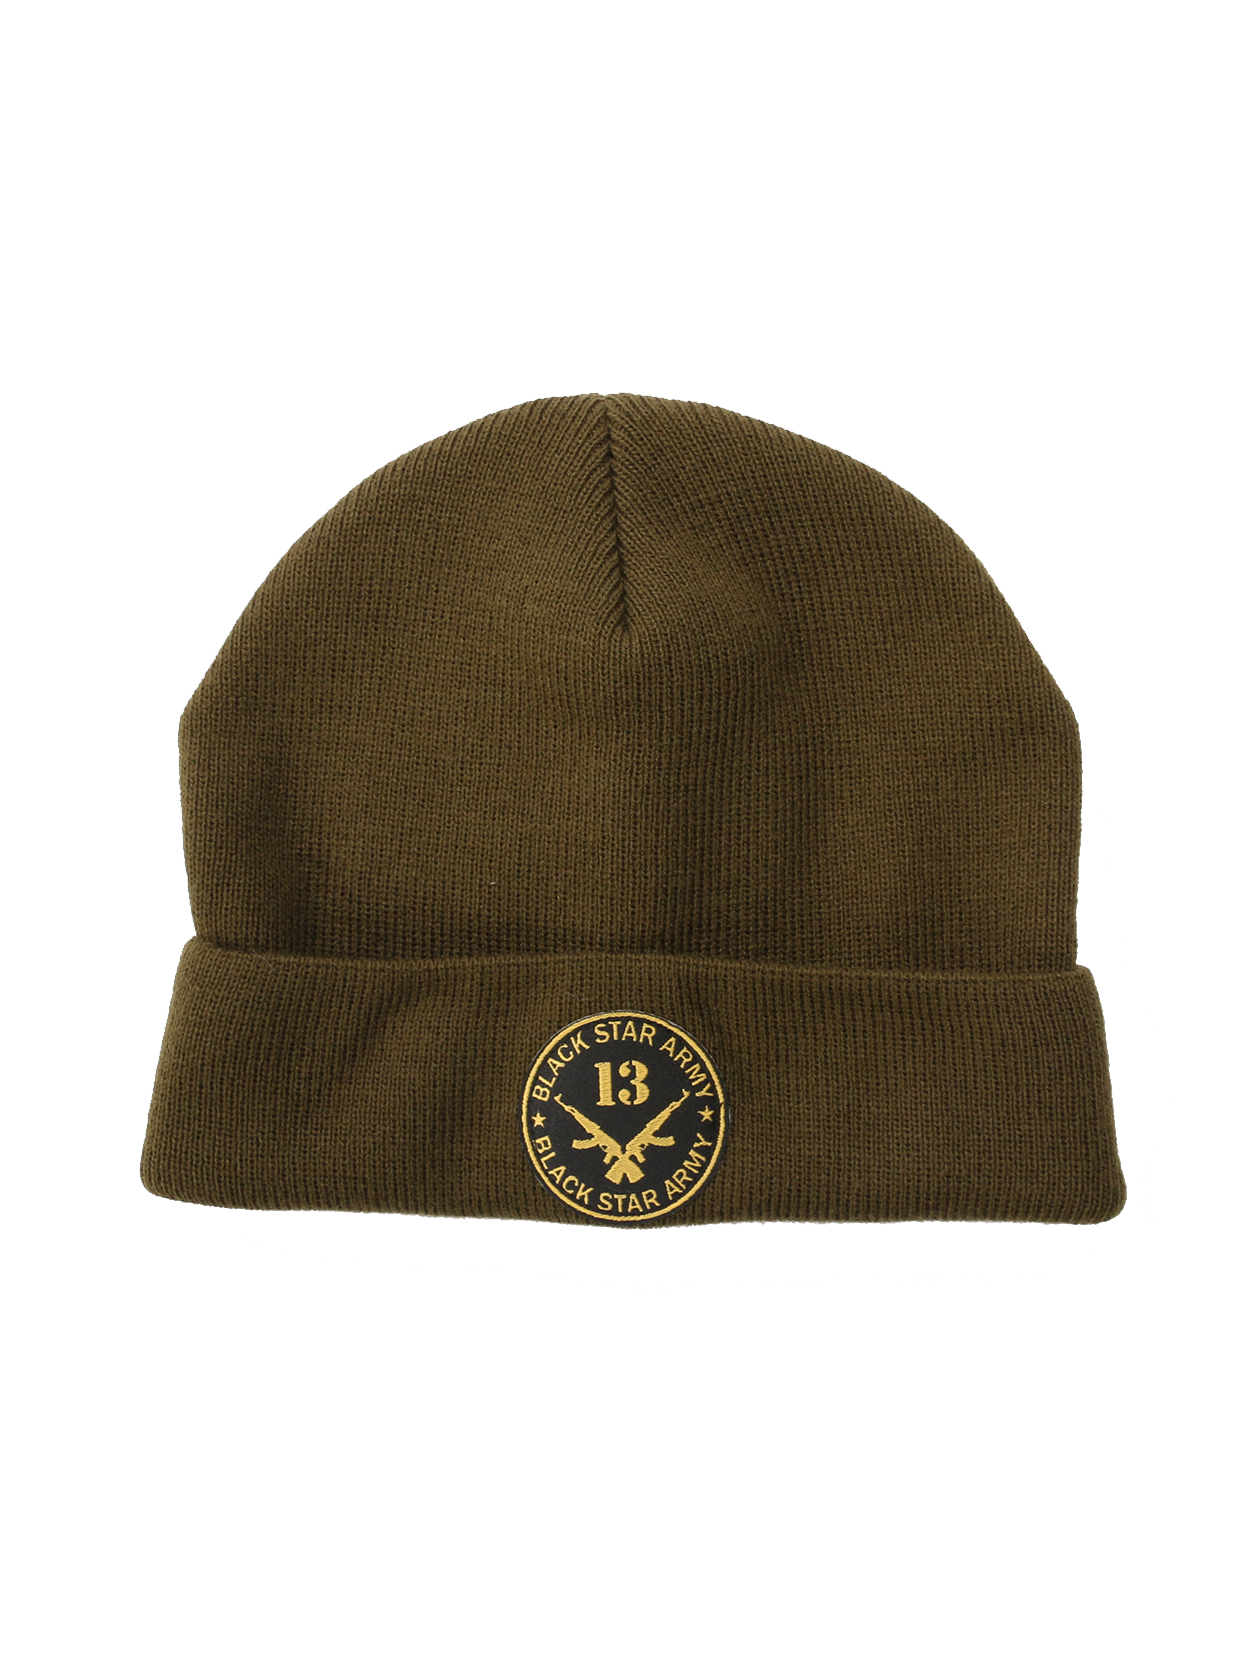 Kids beanie BS ArmyKids beanie in khaki by Black Star Wear. Turn-up brim, ribbed design, 100% acrylic. Patch with crossed rifles and Black Star Army lettering. One size.<br><br>size: One size<br>color: Khaki<br>gender: unisex